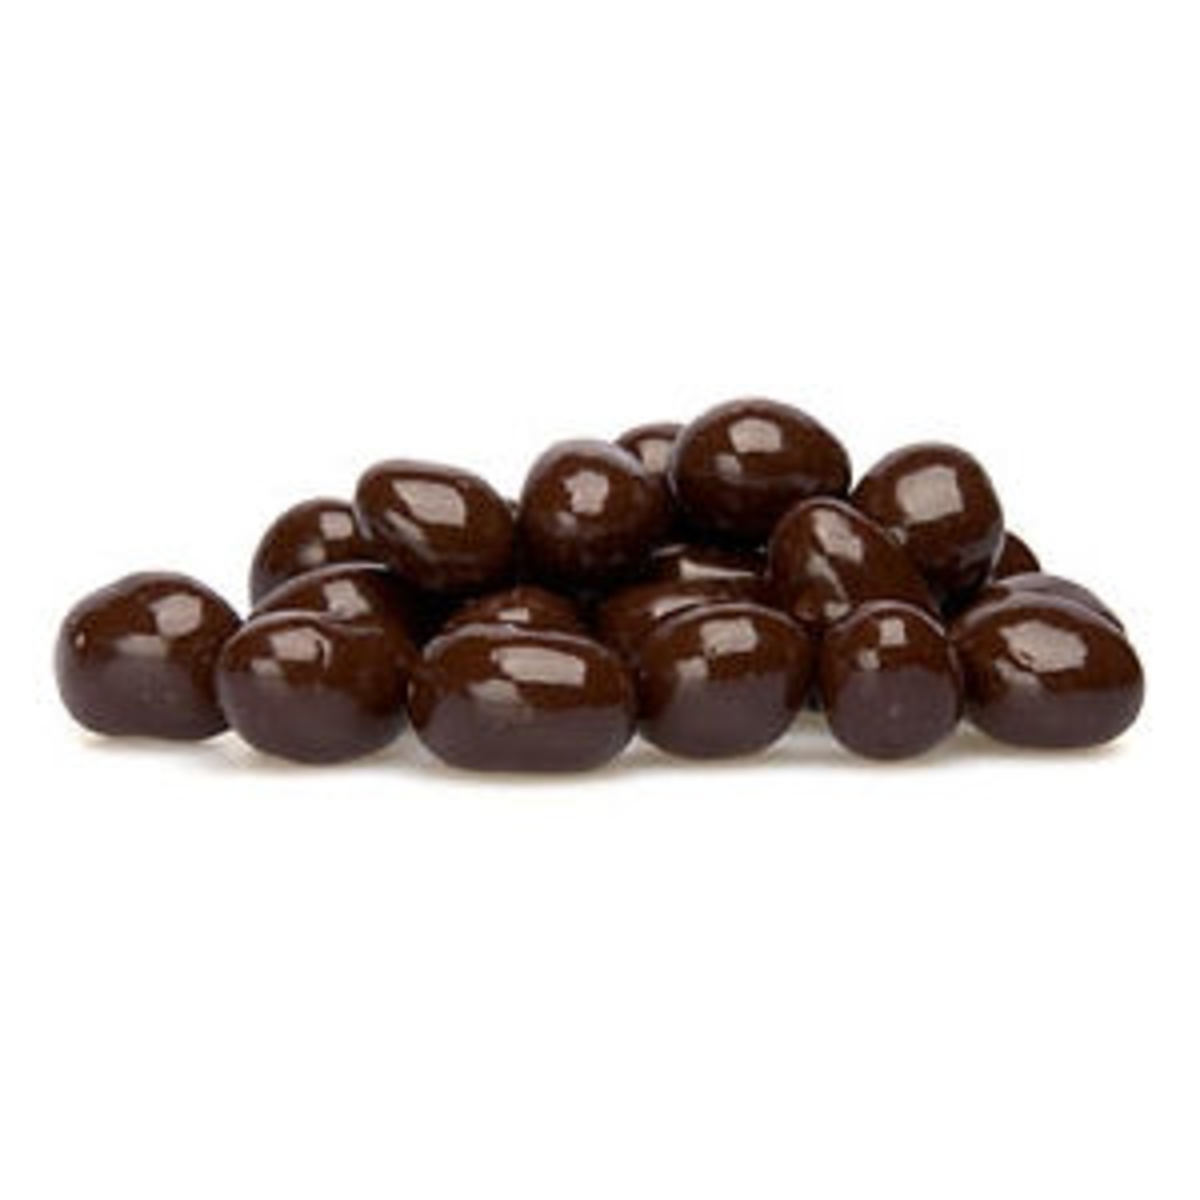 Chocolate Covered Pom Seeds